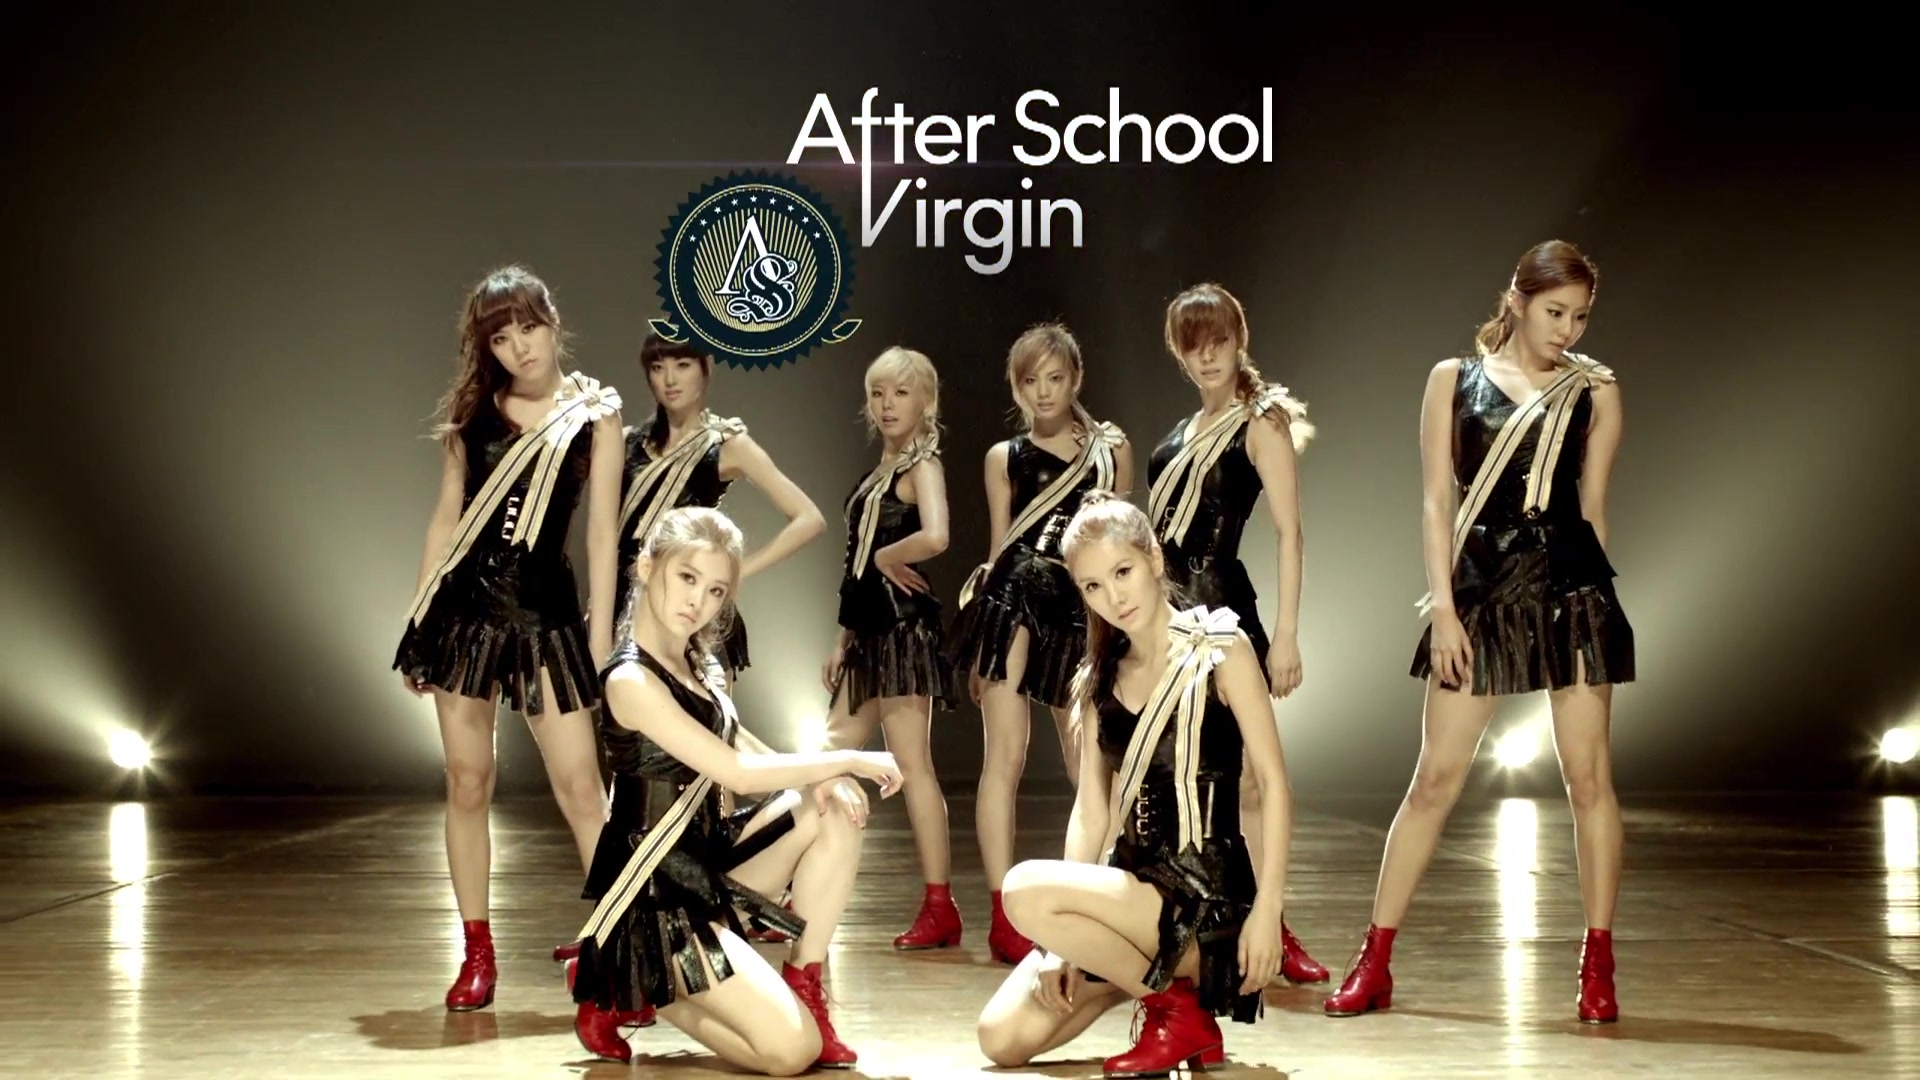 After School HD Wallpaper   Asiachan KPOPJPOP Image Board 1920x1080